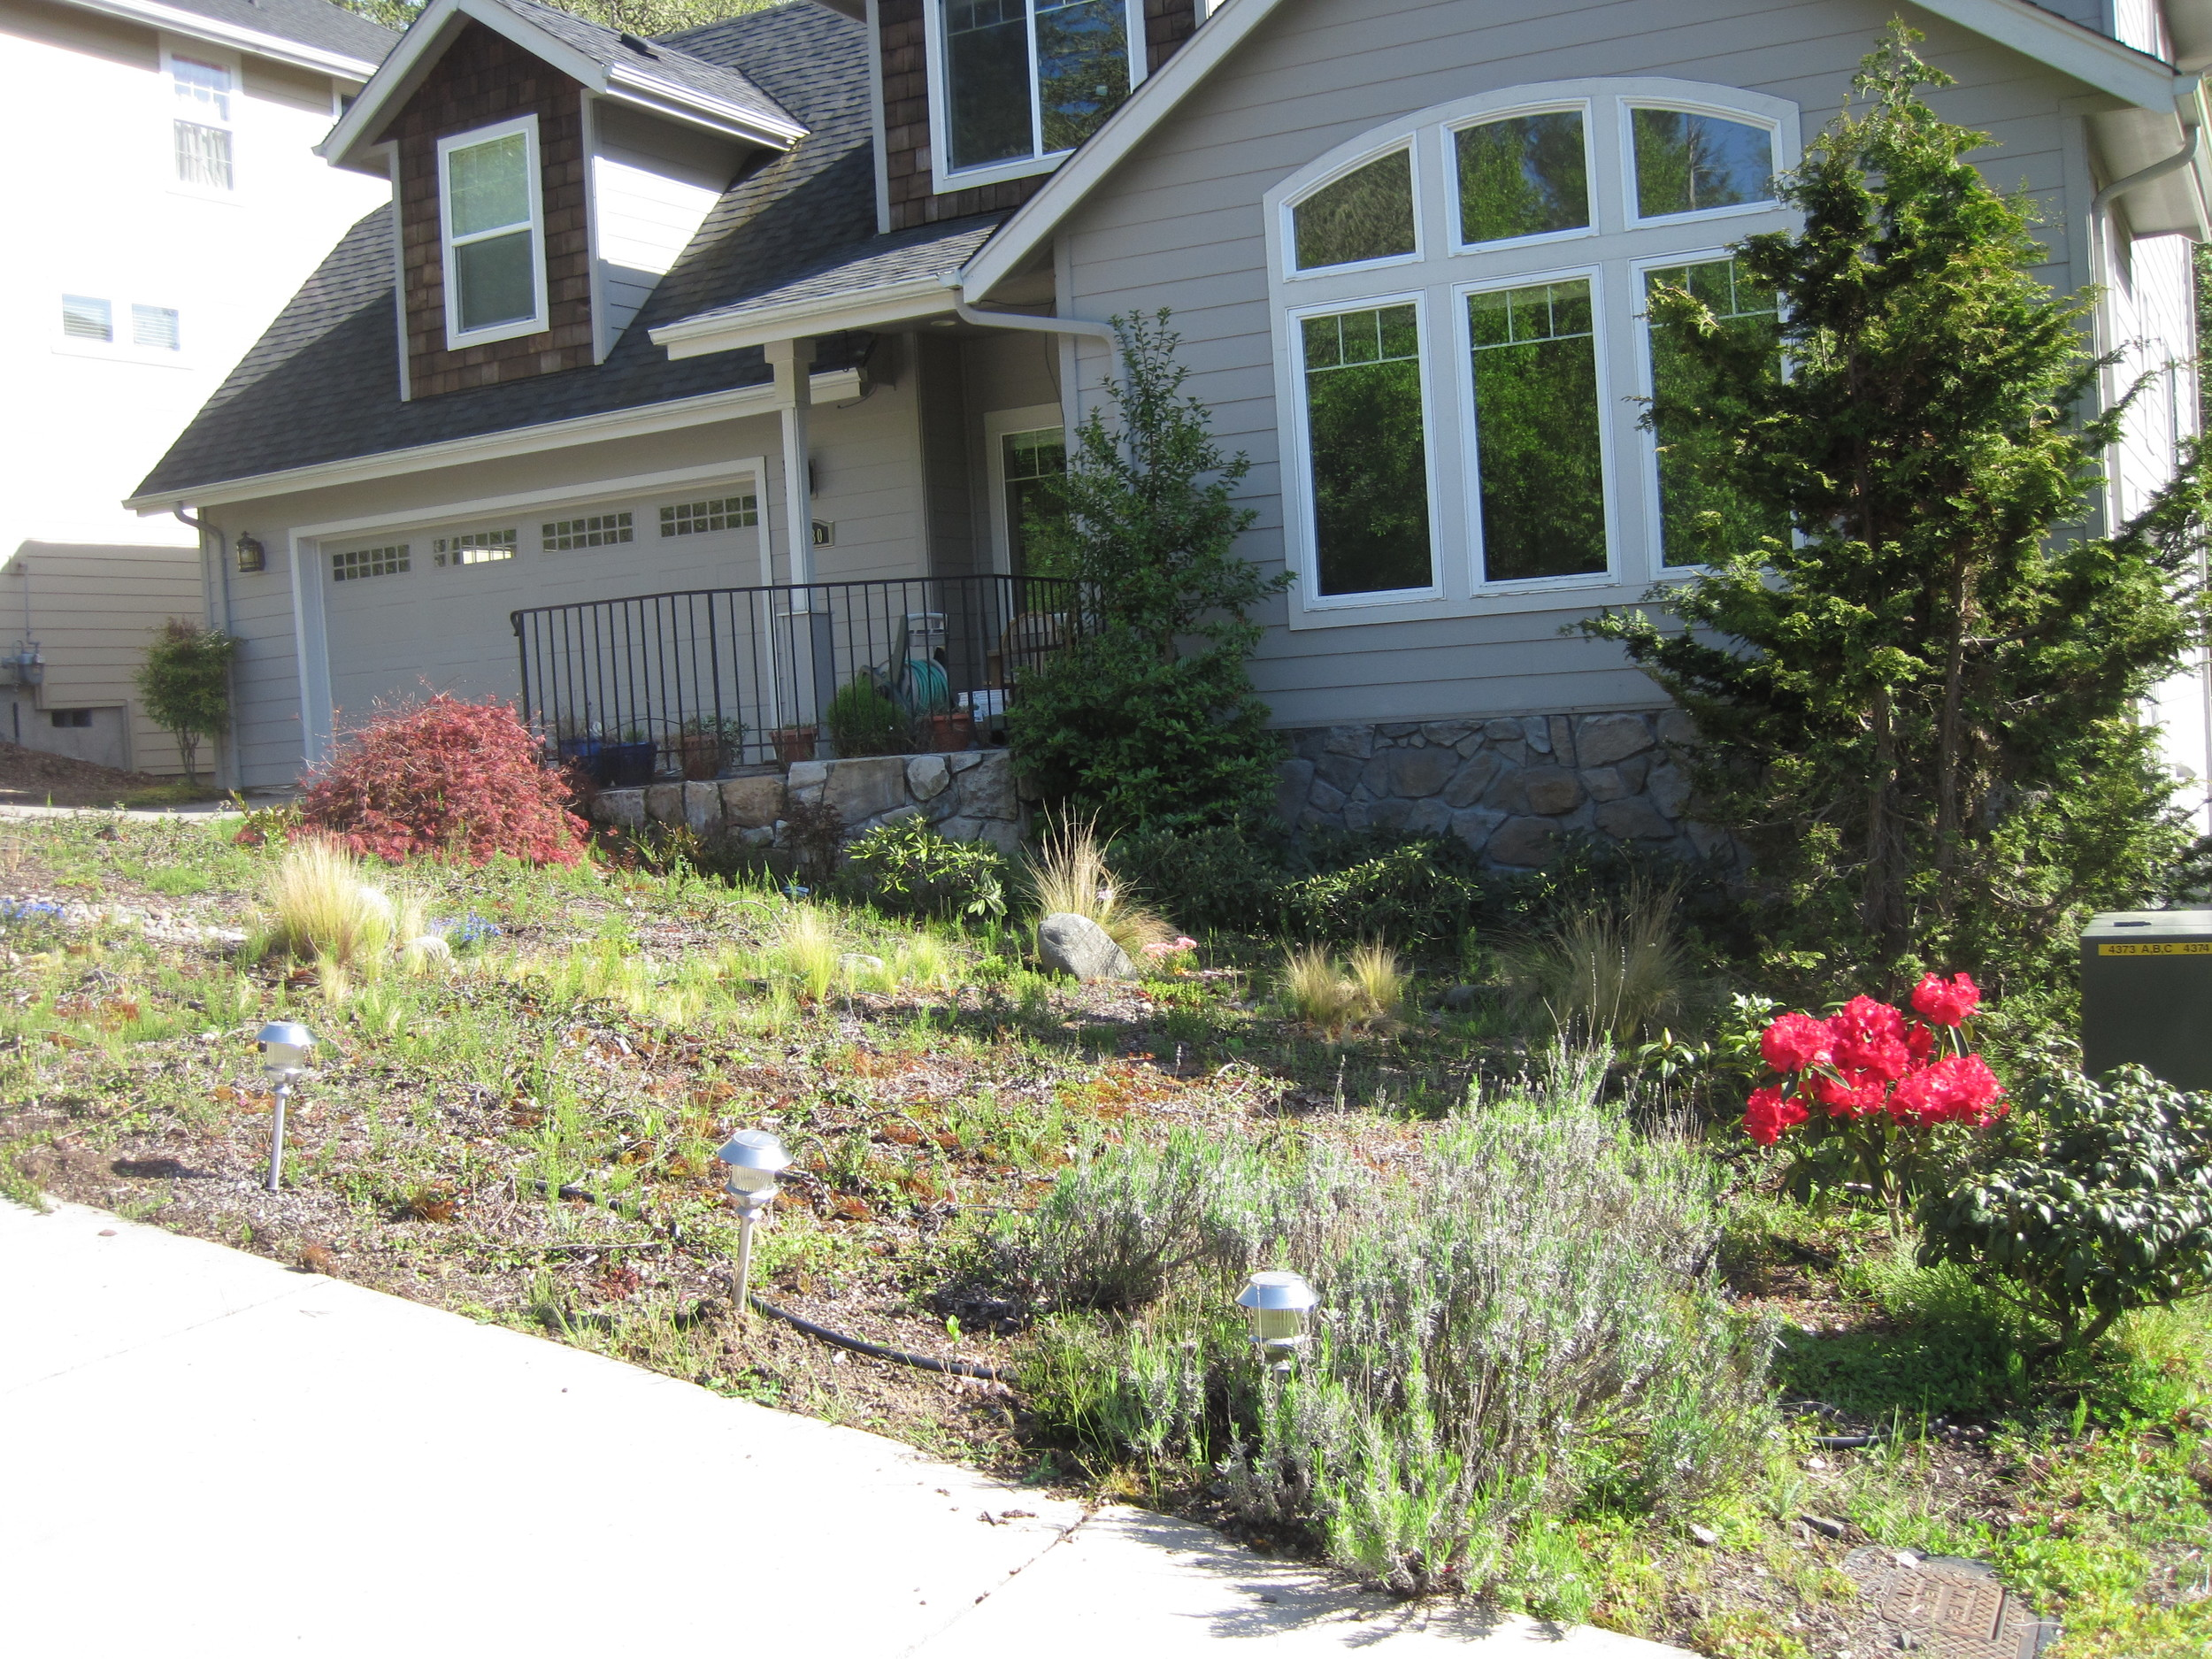 Before: low, sparse plantings were overwhelmed by the facade of the house and the driveway.